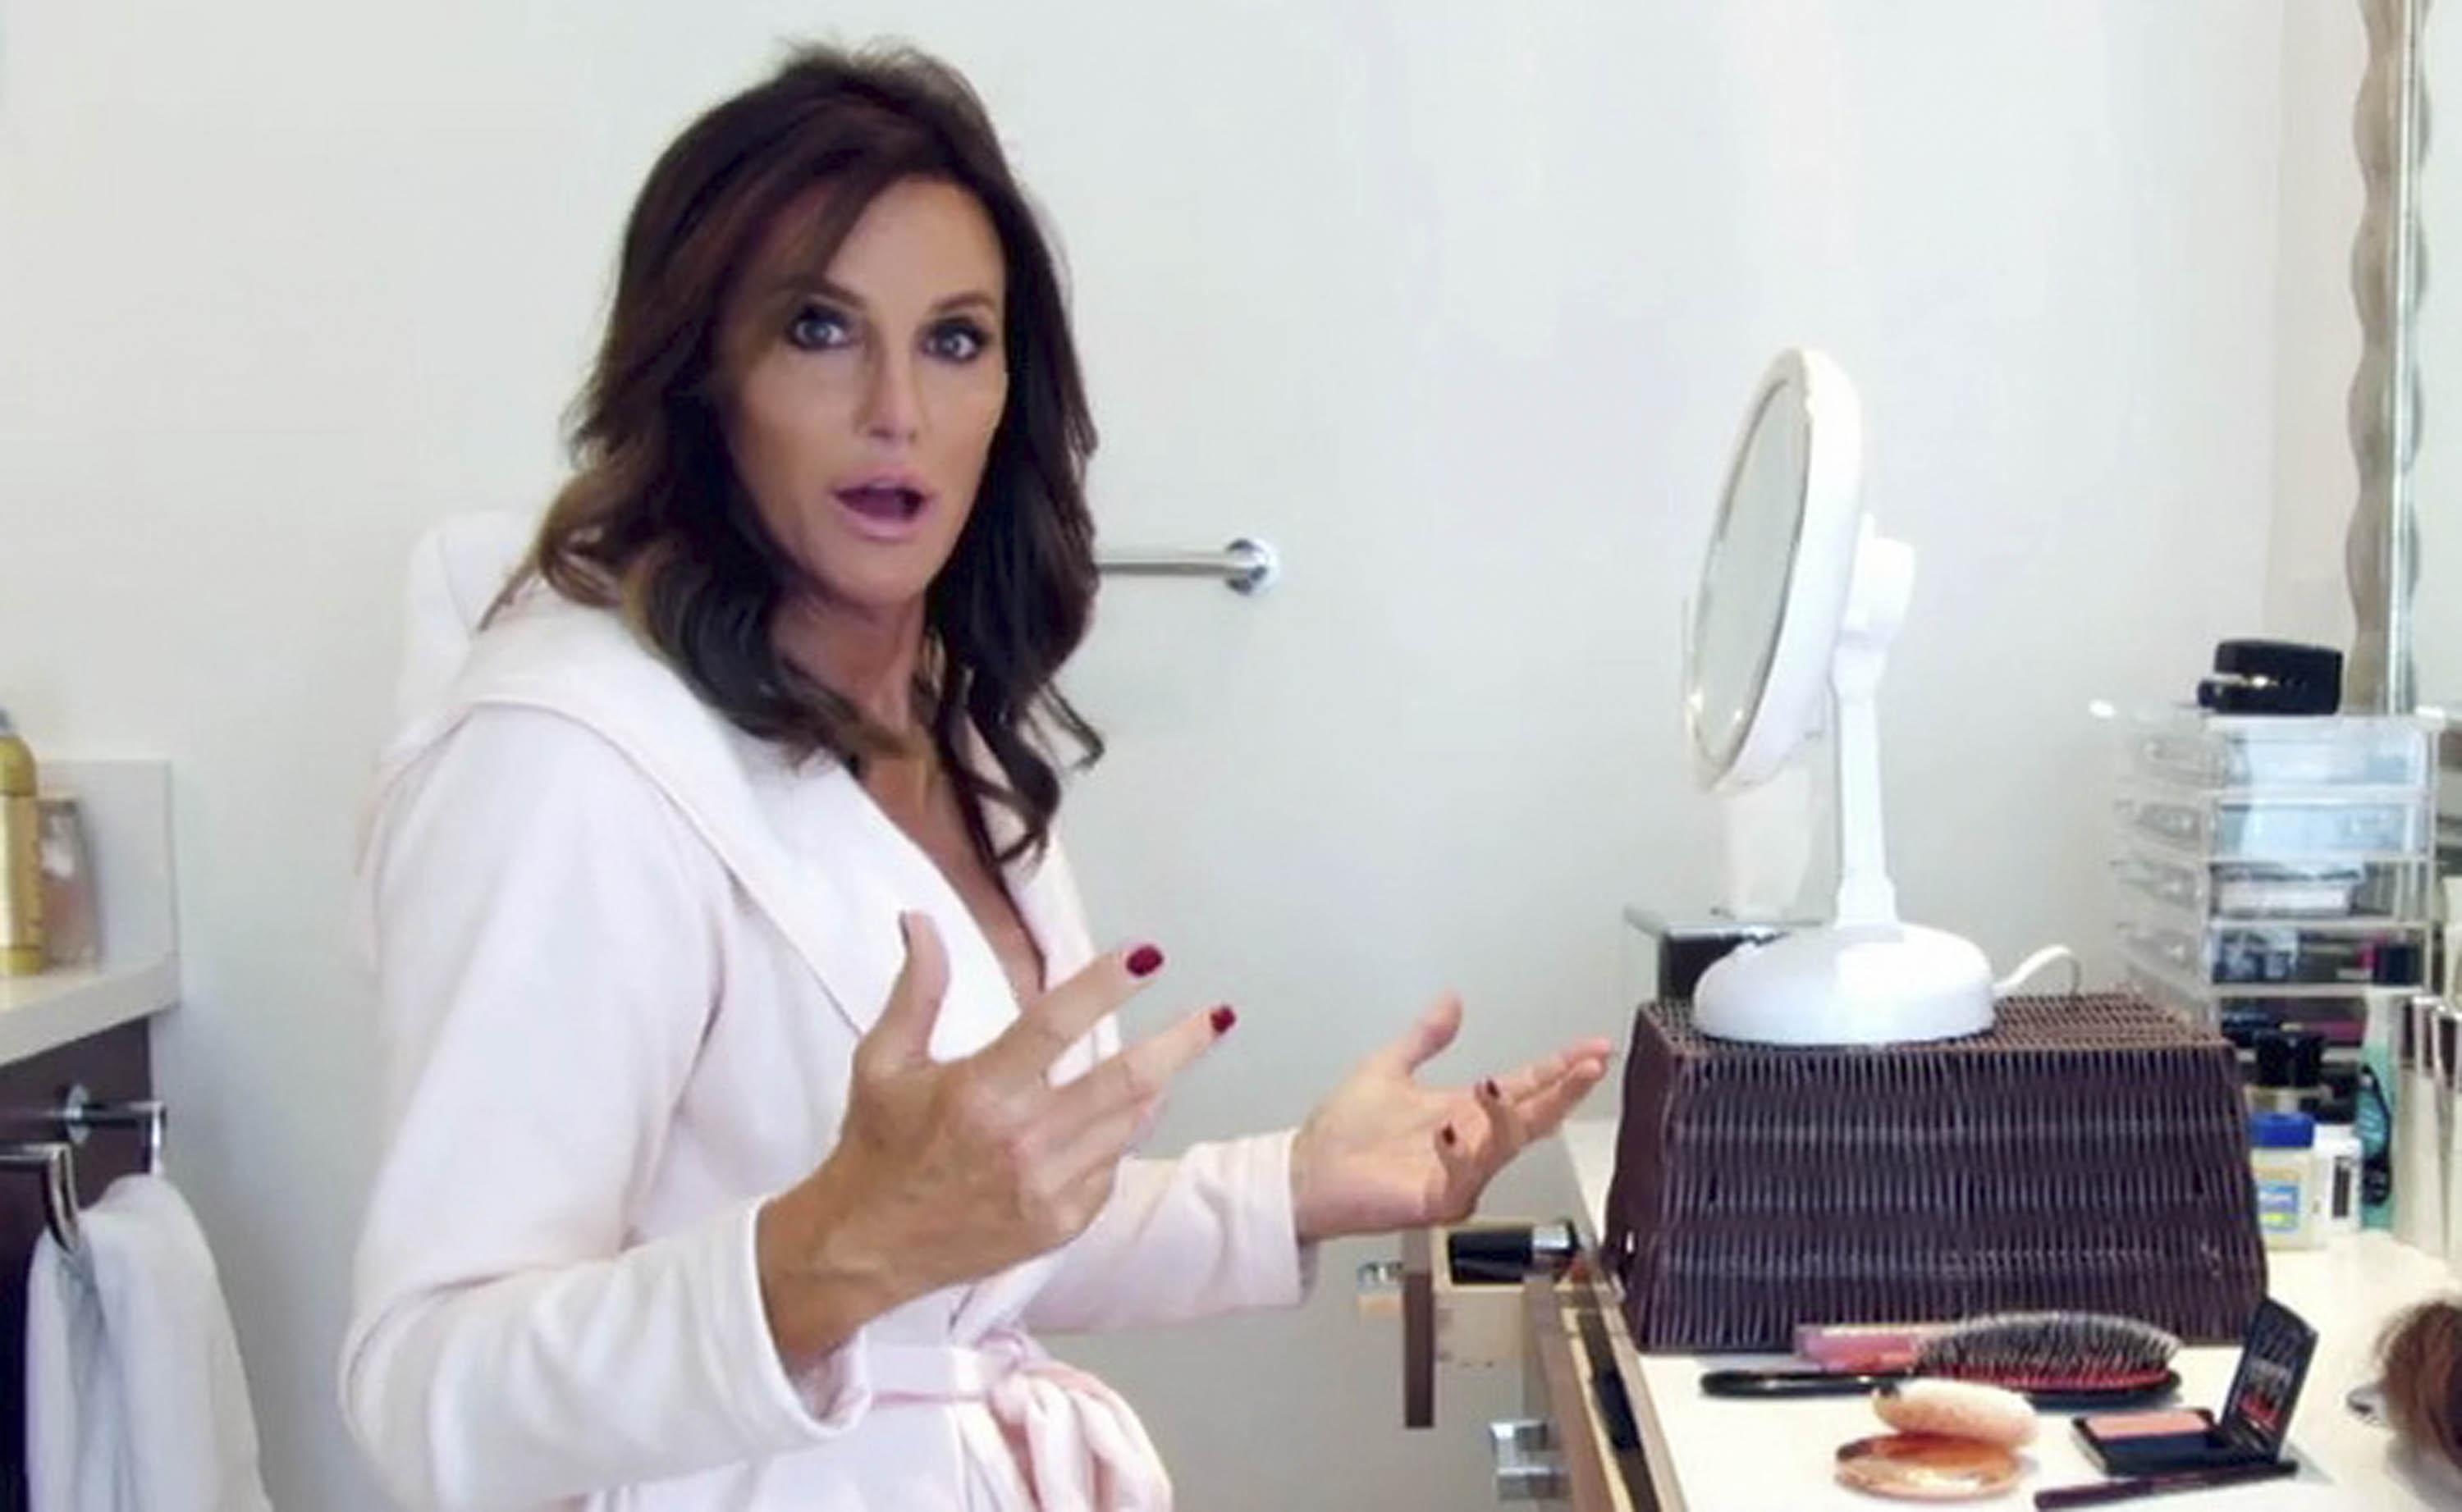 The first question in Jenner's new reality show: Will her mother accept her new identity?